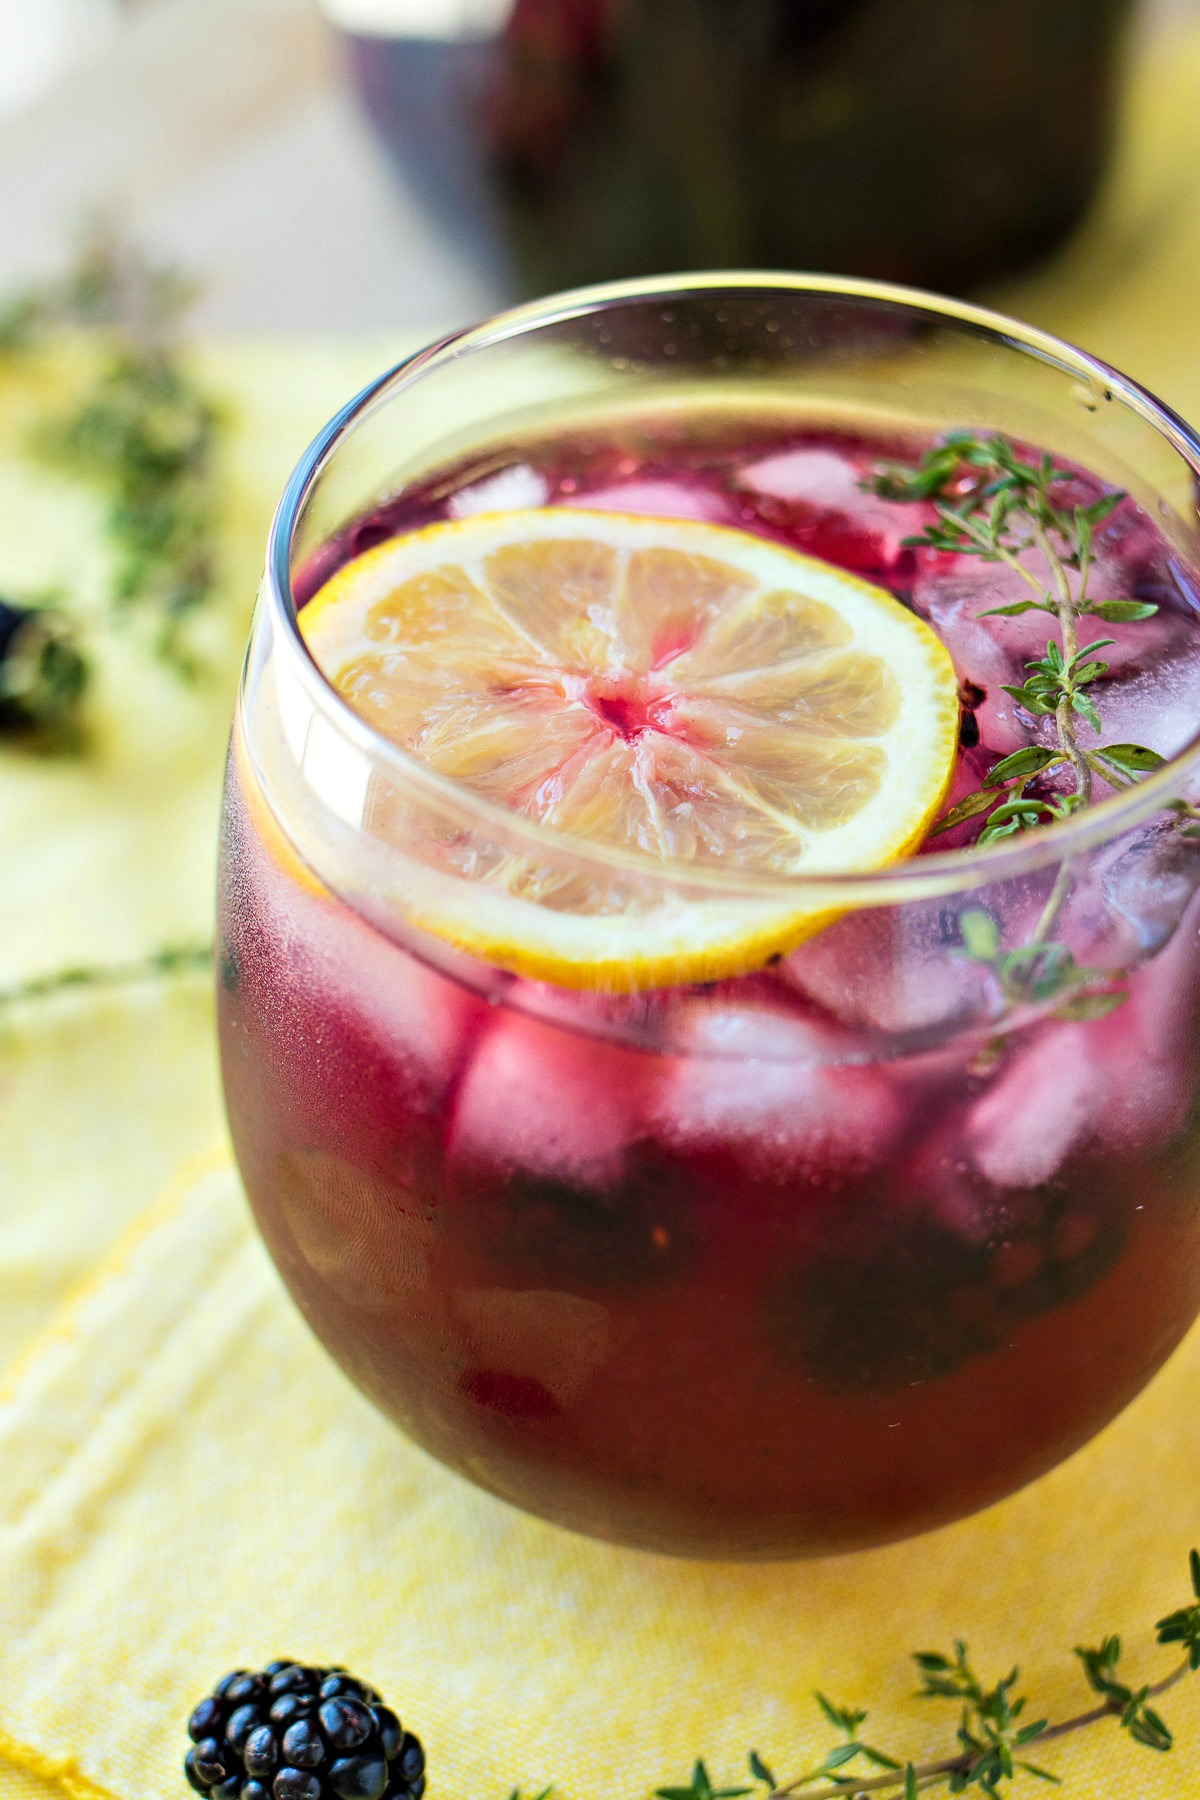 Blackberry Lemon Vodka Punch - A refreshing spiked punch made with fresh lemon juice, muddled blackberries, and a homemade blackberry & thyme infused vodka. The perfect drink to enjoy any time of year!